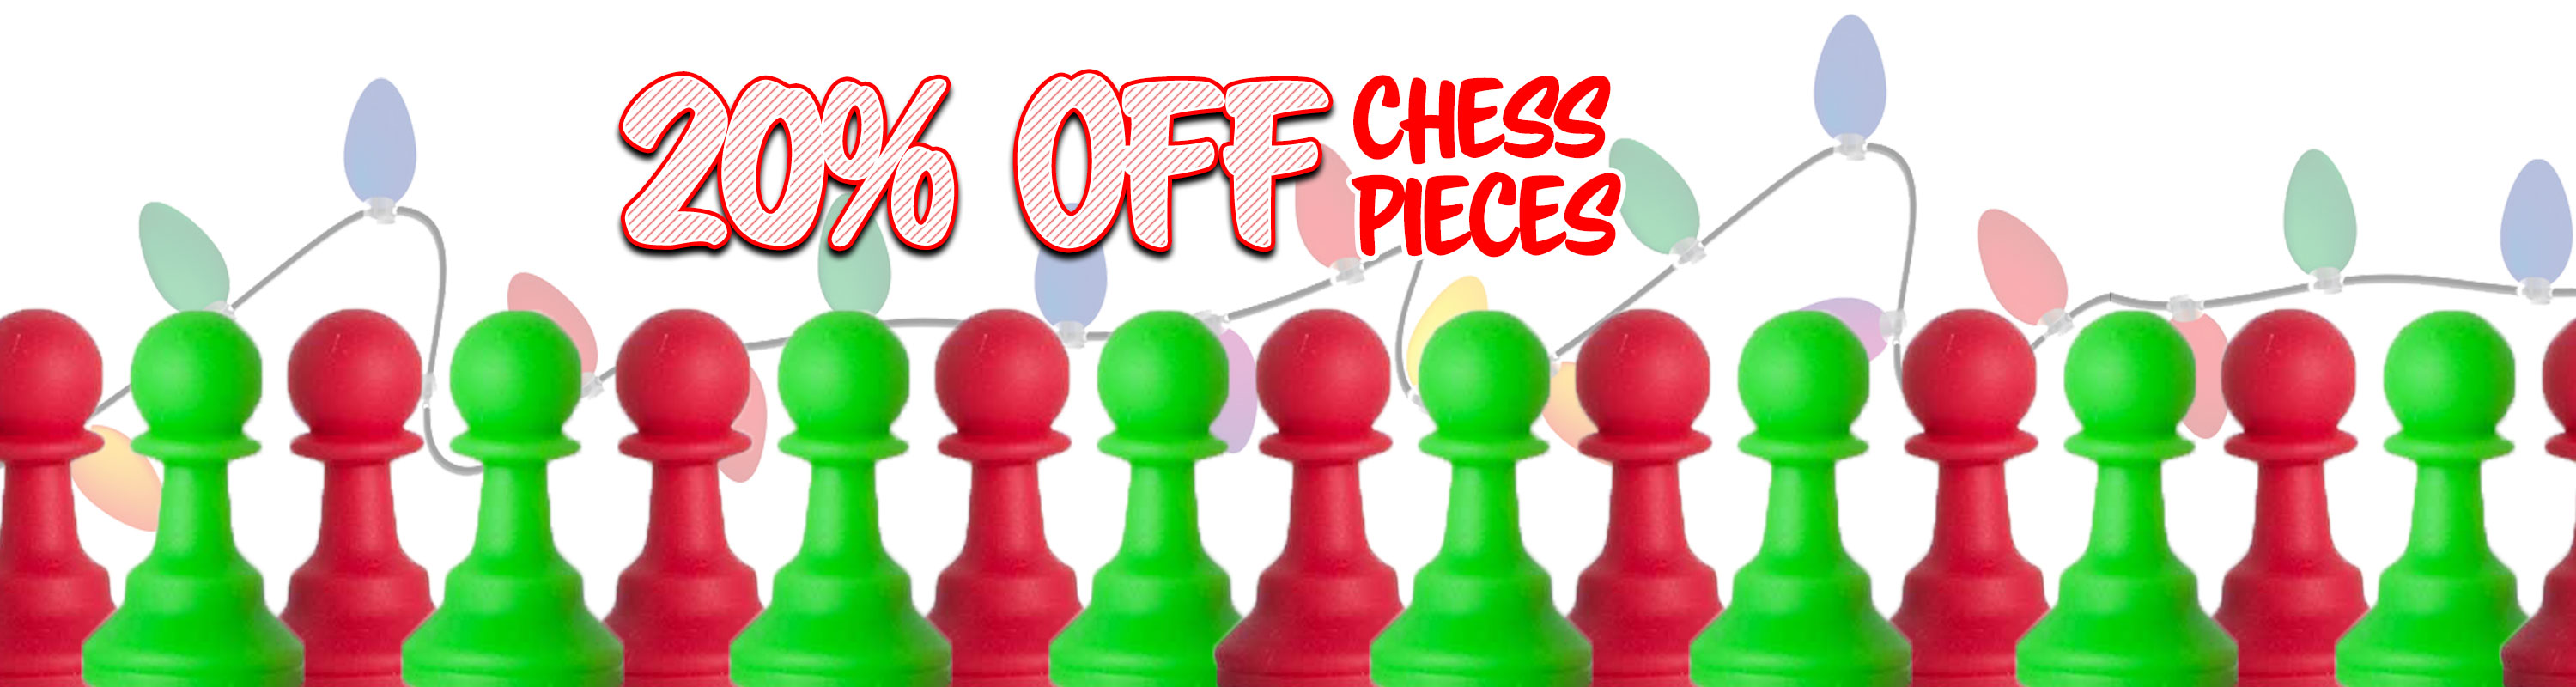 Chess Pieces - 20% Off